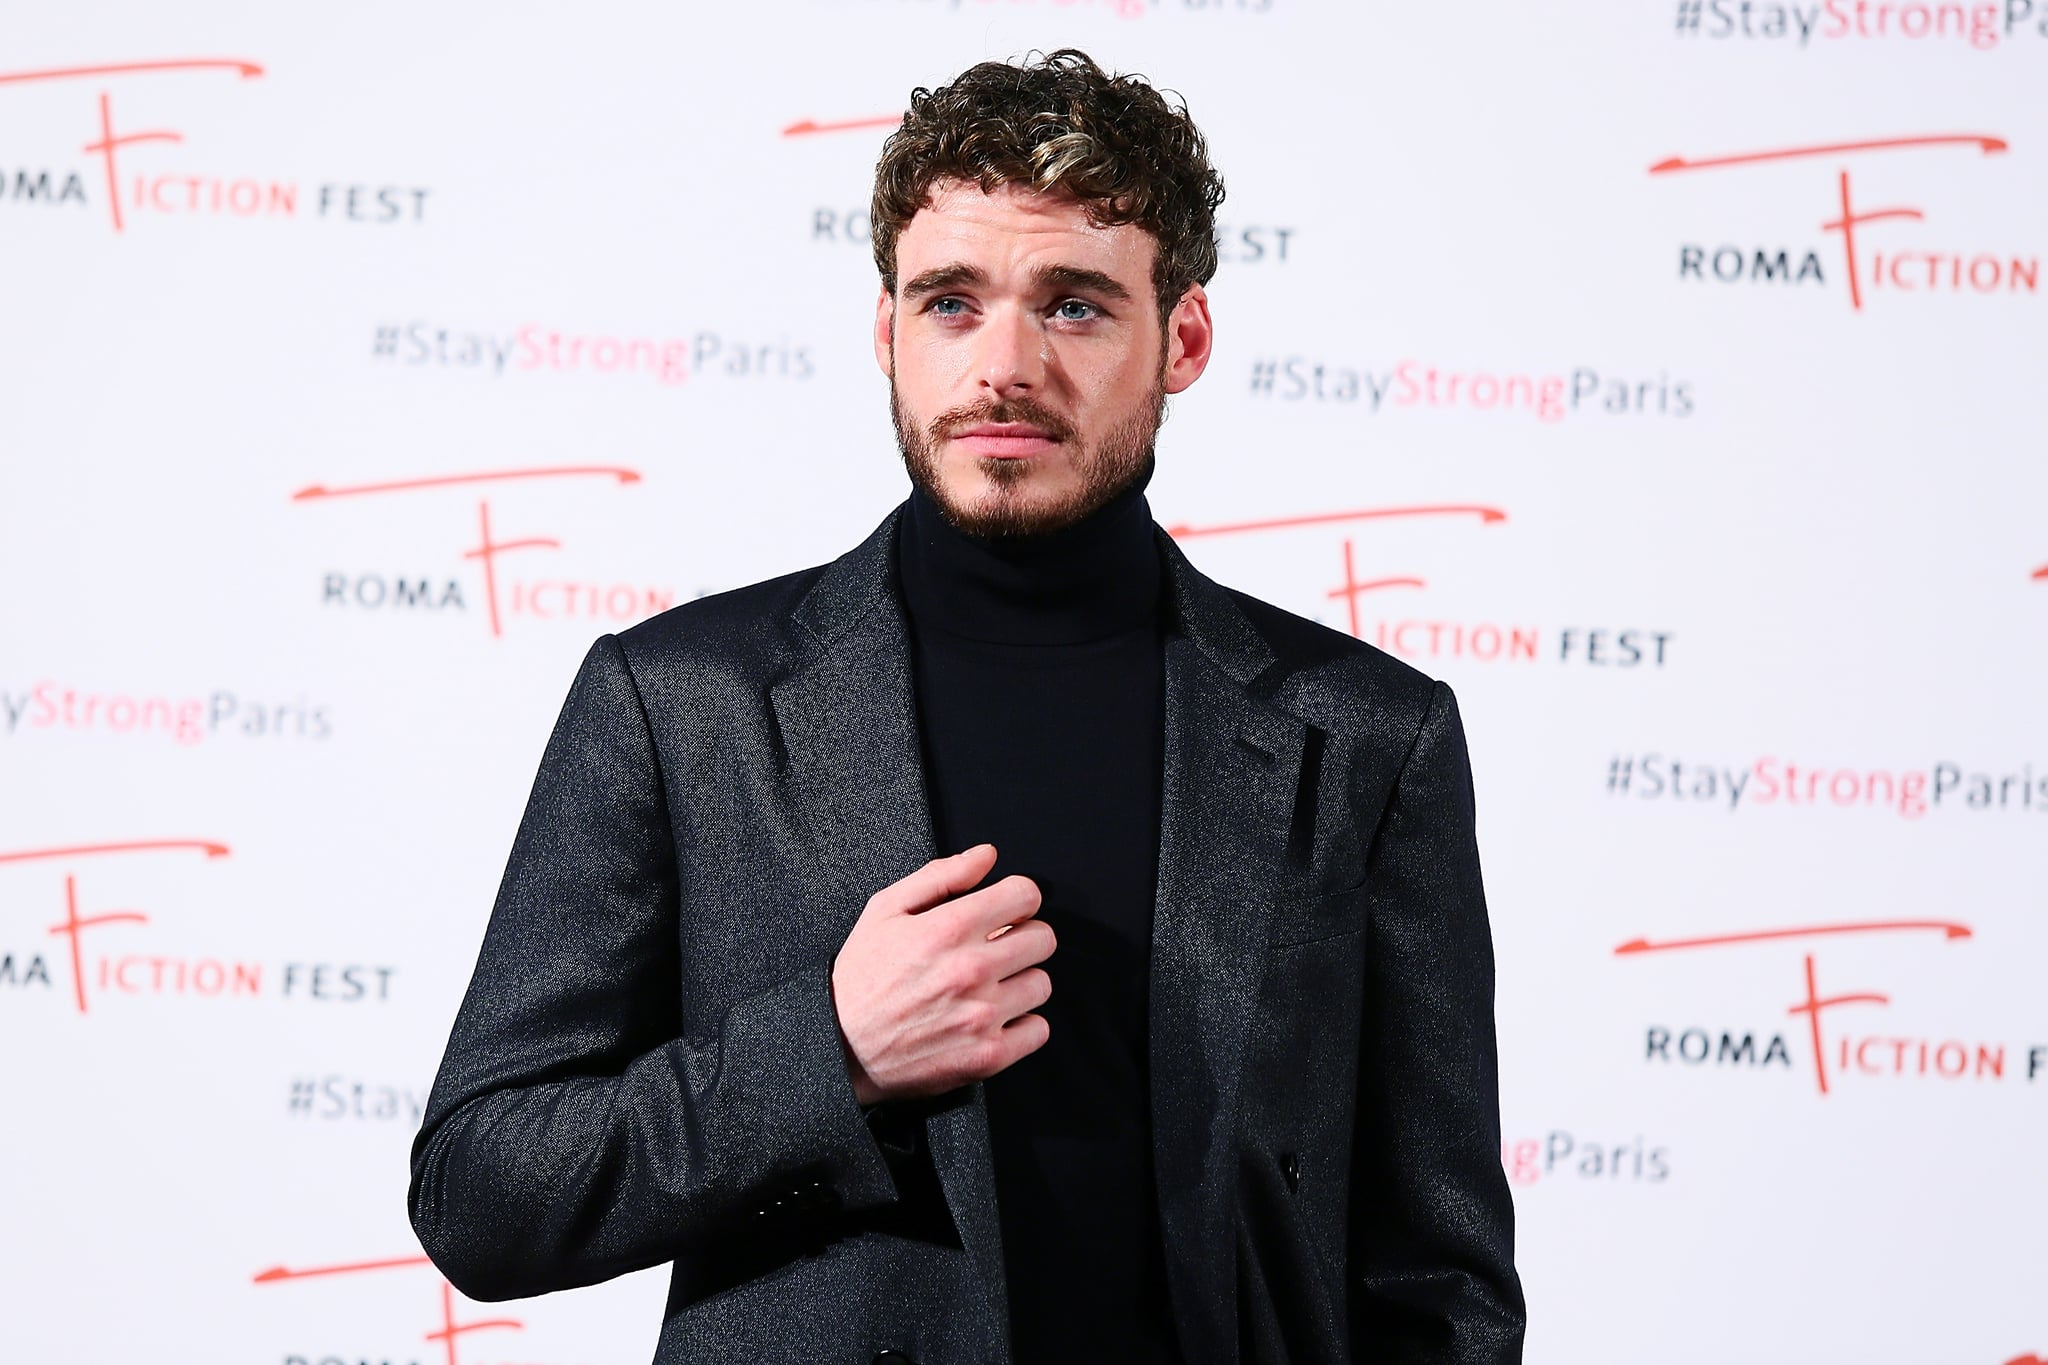 ROME, ITALY - NOVEMBER 14:  Richard Madden attends the 'Medici. Master of Florence e il Rinascimento italiano' photocall during the 9th Roma Fiction Fest at Cinema Adriano on November 14, 2015 in Rome, Italy.  (Photo by Ernesto Ruscio/Getty Images)